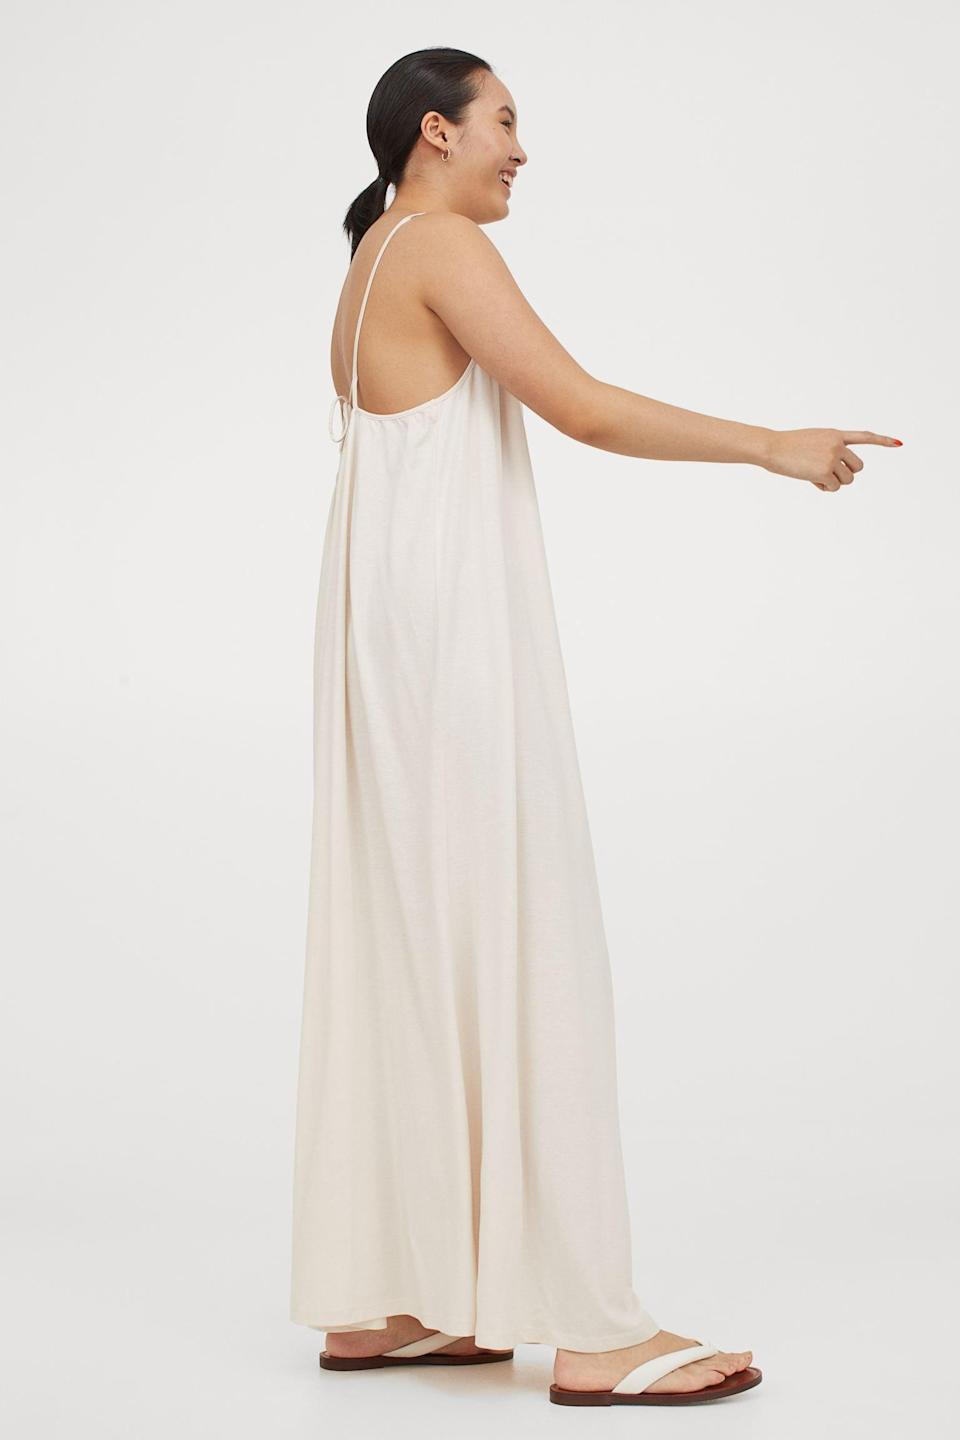 <p>Headed to the airport, and want something comfy? This <span>H&amp;M Sleeveless Maxi Dress</span> ($25) has you covered with effortless style, a relaxed silhouette, and maximum comfort.</p>